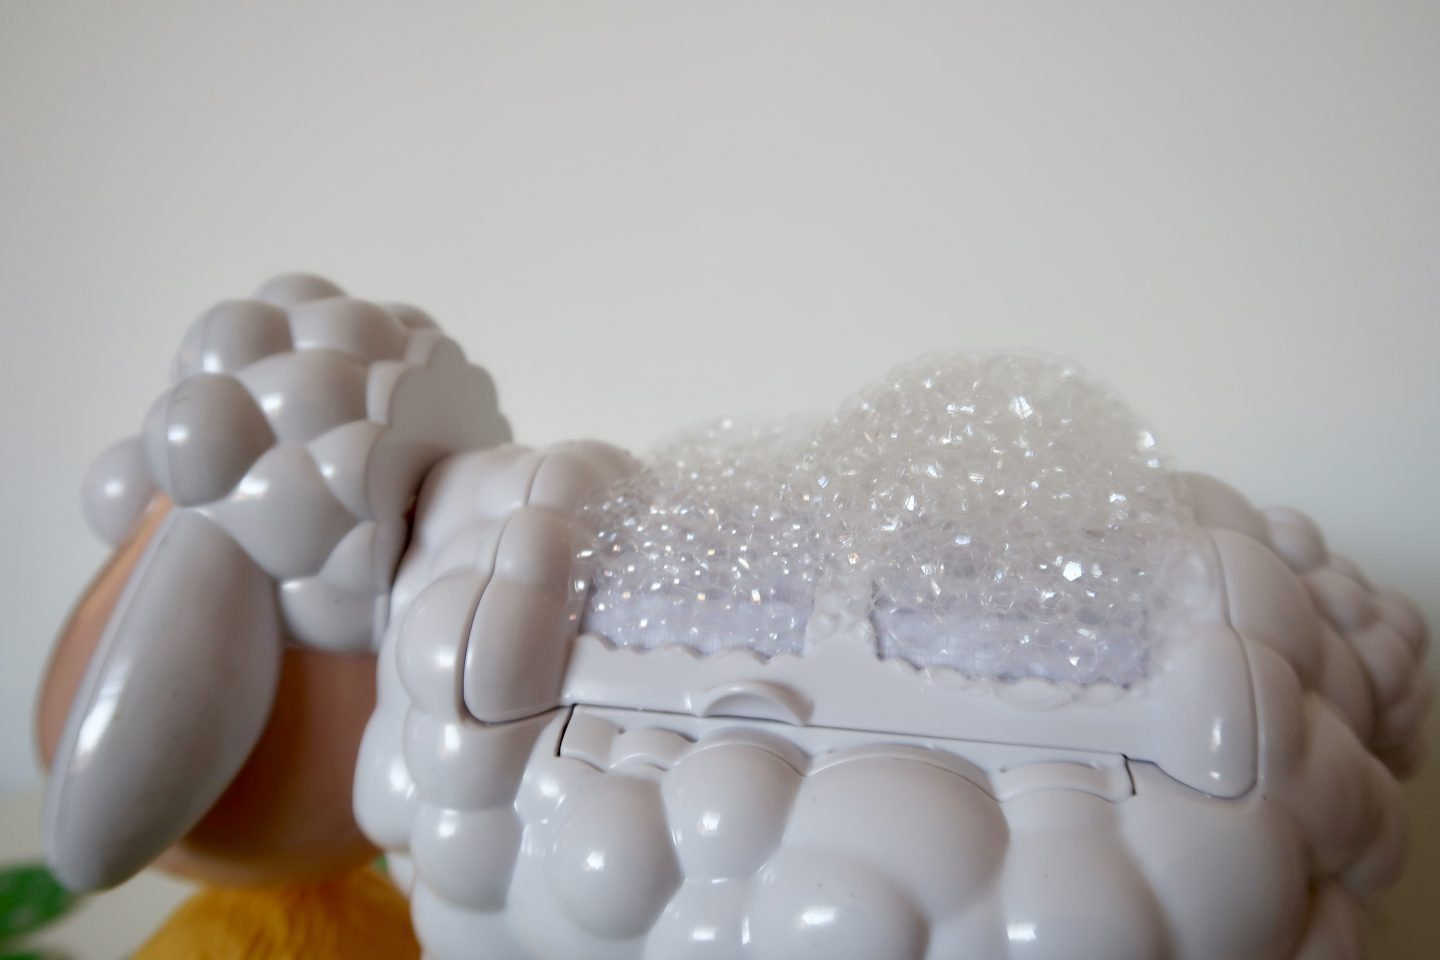 The back of a plastic sheep with bubbles all over it